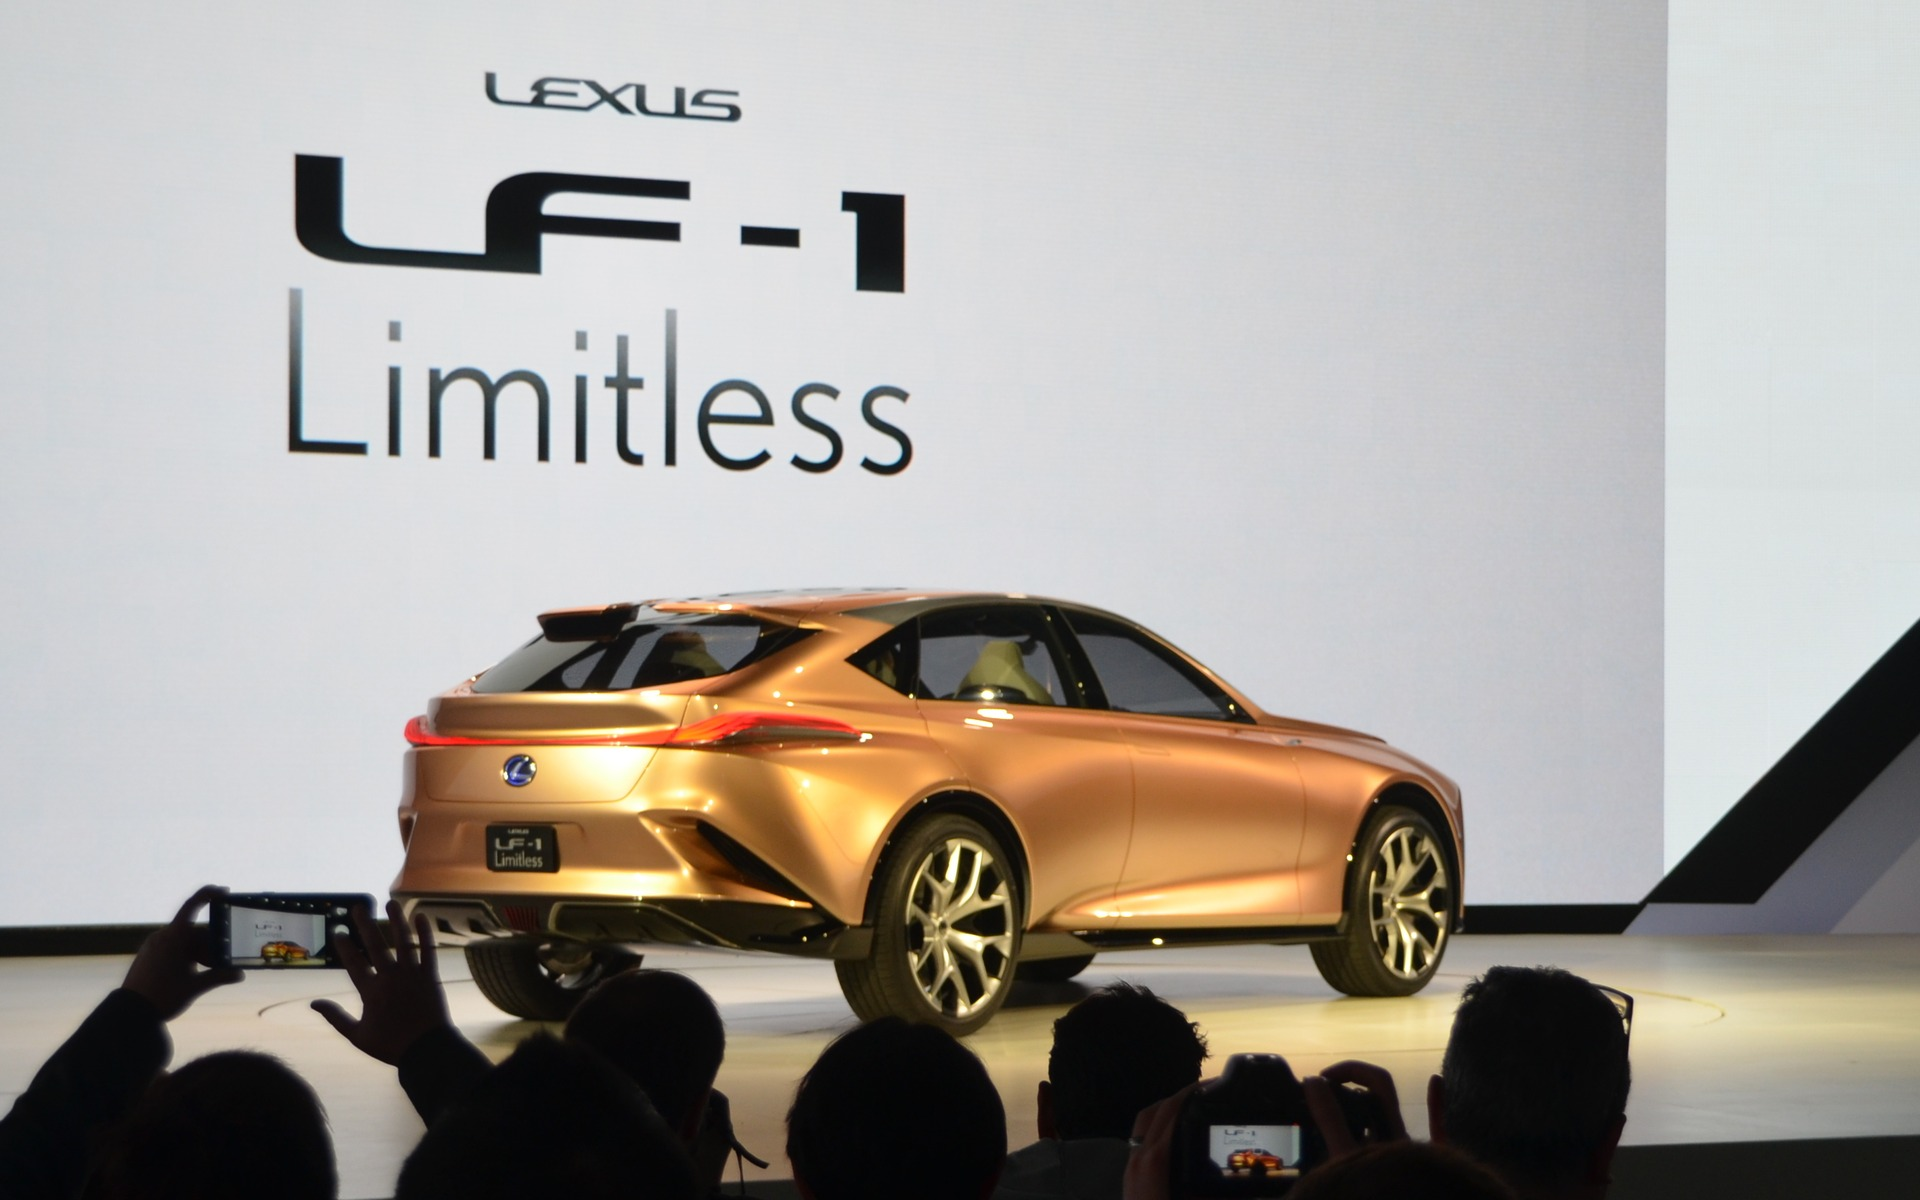 Lexus Lf 1 Limitless Concept Pushing The Limits What